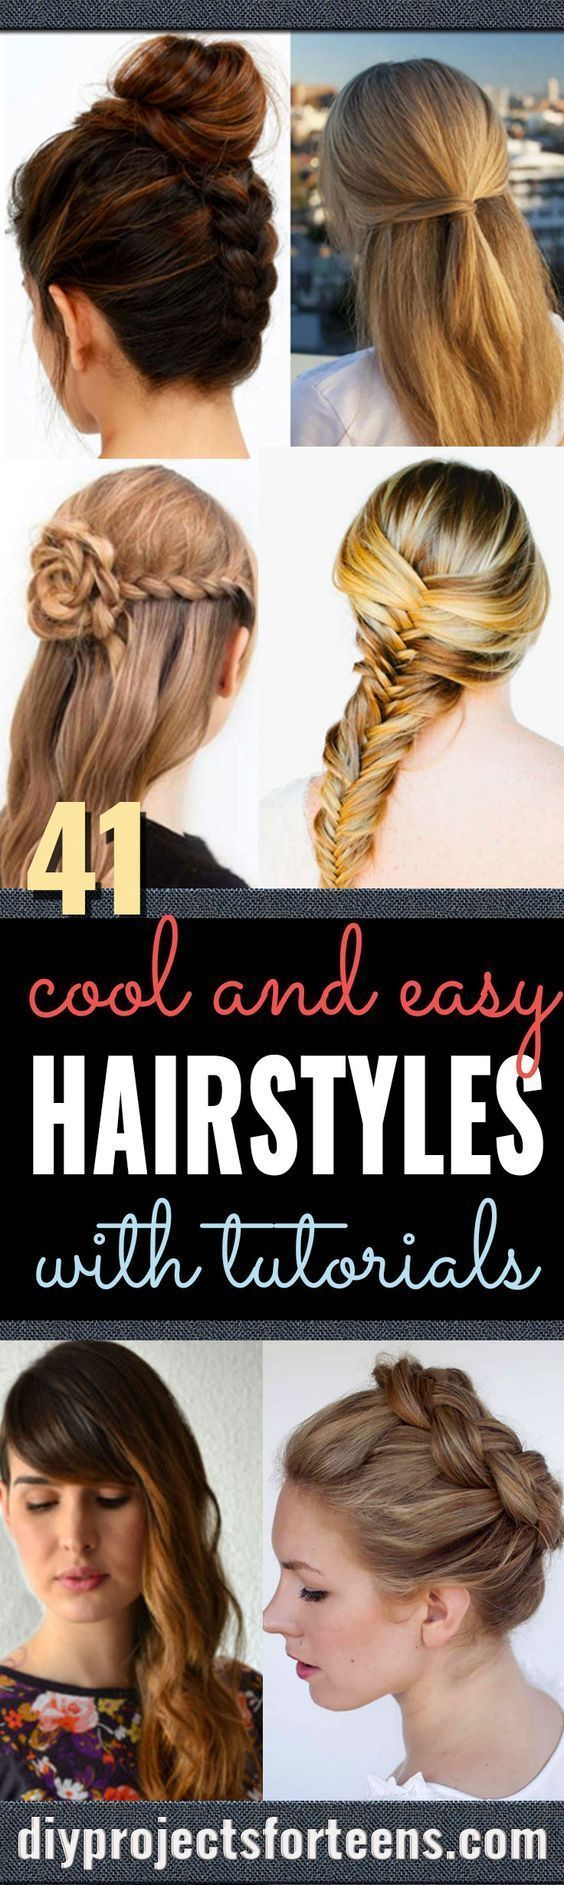 Cool and Easy DIY Hairstyles - Quick and Easy Ideas for Back to School Styles for Medium, Short and Long Hair - Fun Tips and Best Step by Step Tutorials for Teens, Prom, Weddings, Special Occasions and Work. Up dos, Braids, Top Knots and Buns, Super Summer Looks http://diyprojectsforteens.com/diy-cool-easy-hairstyles #diyhairstylesforschool